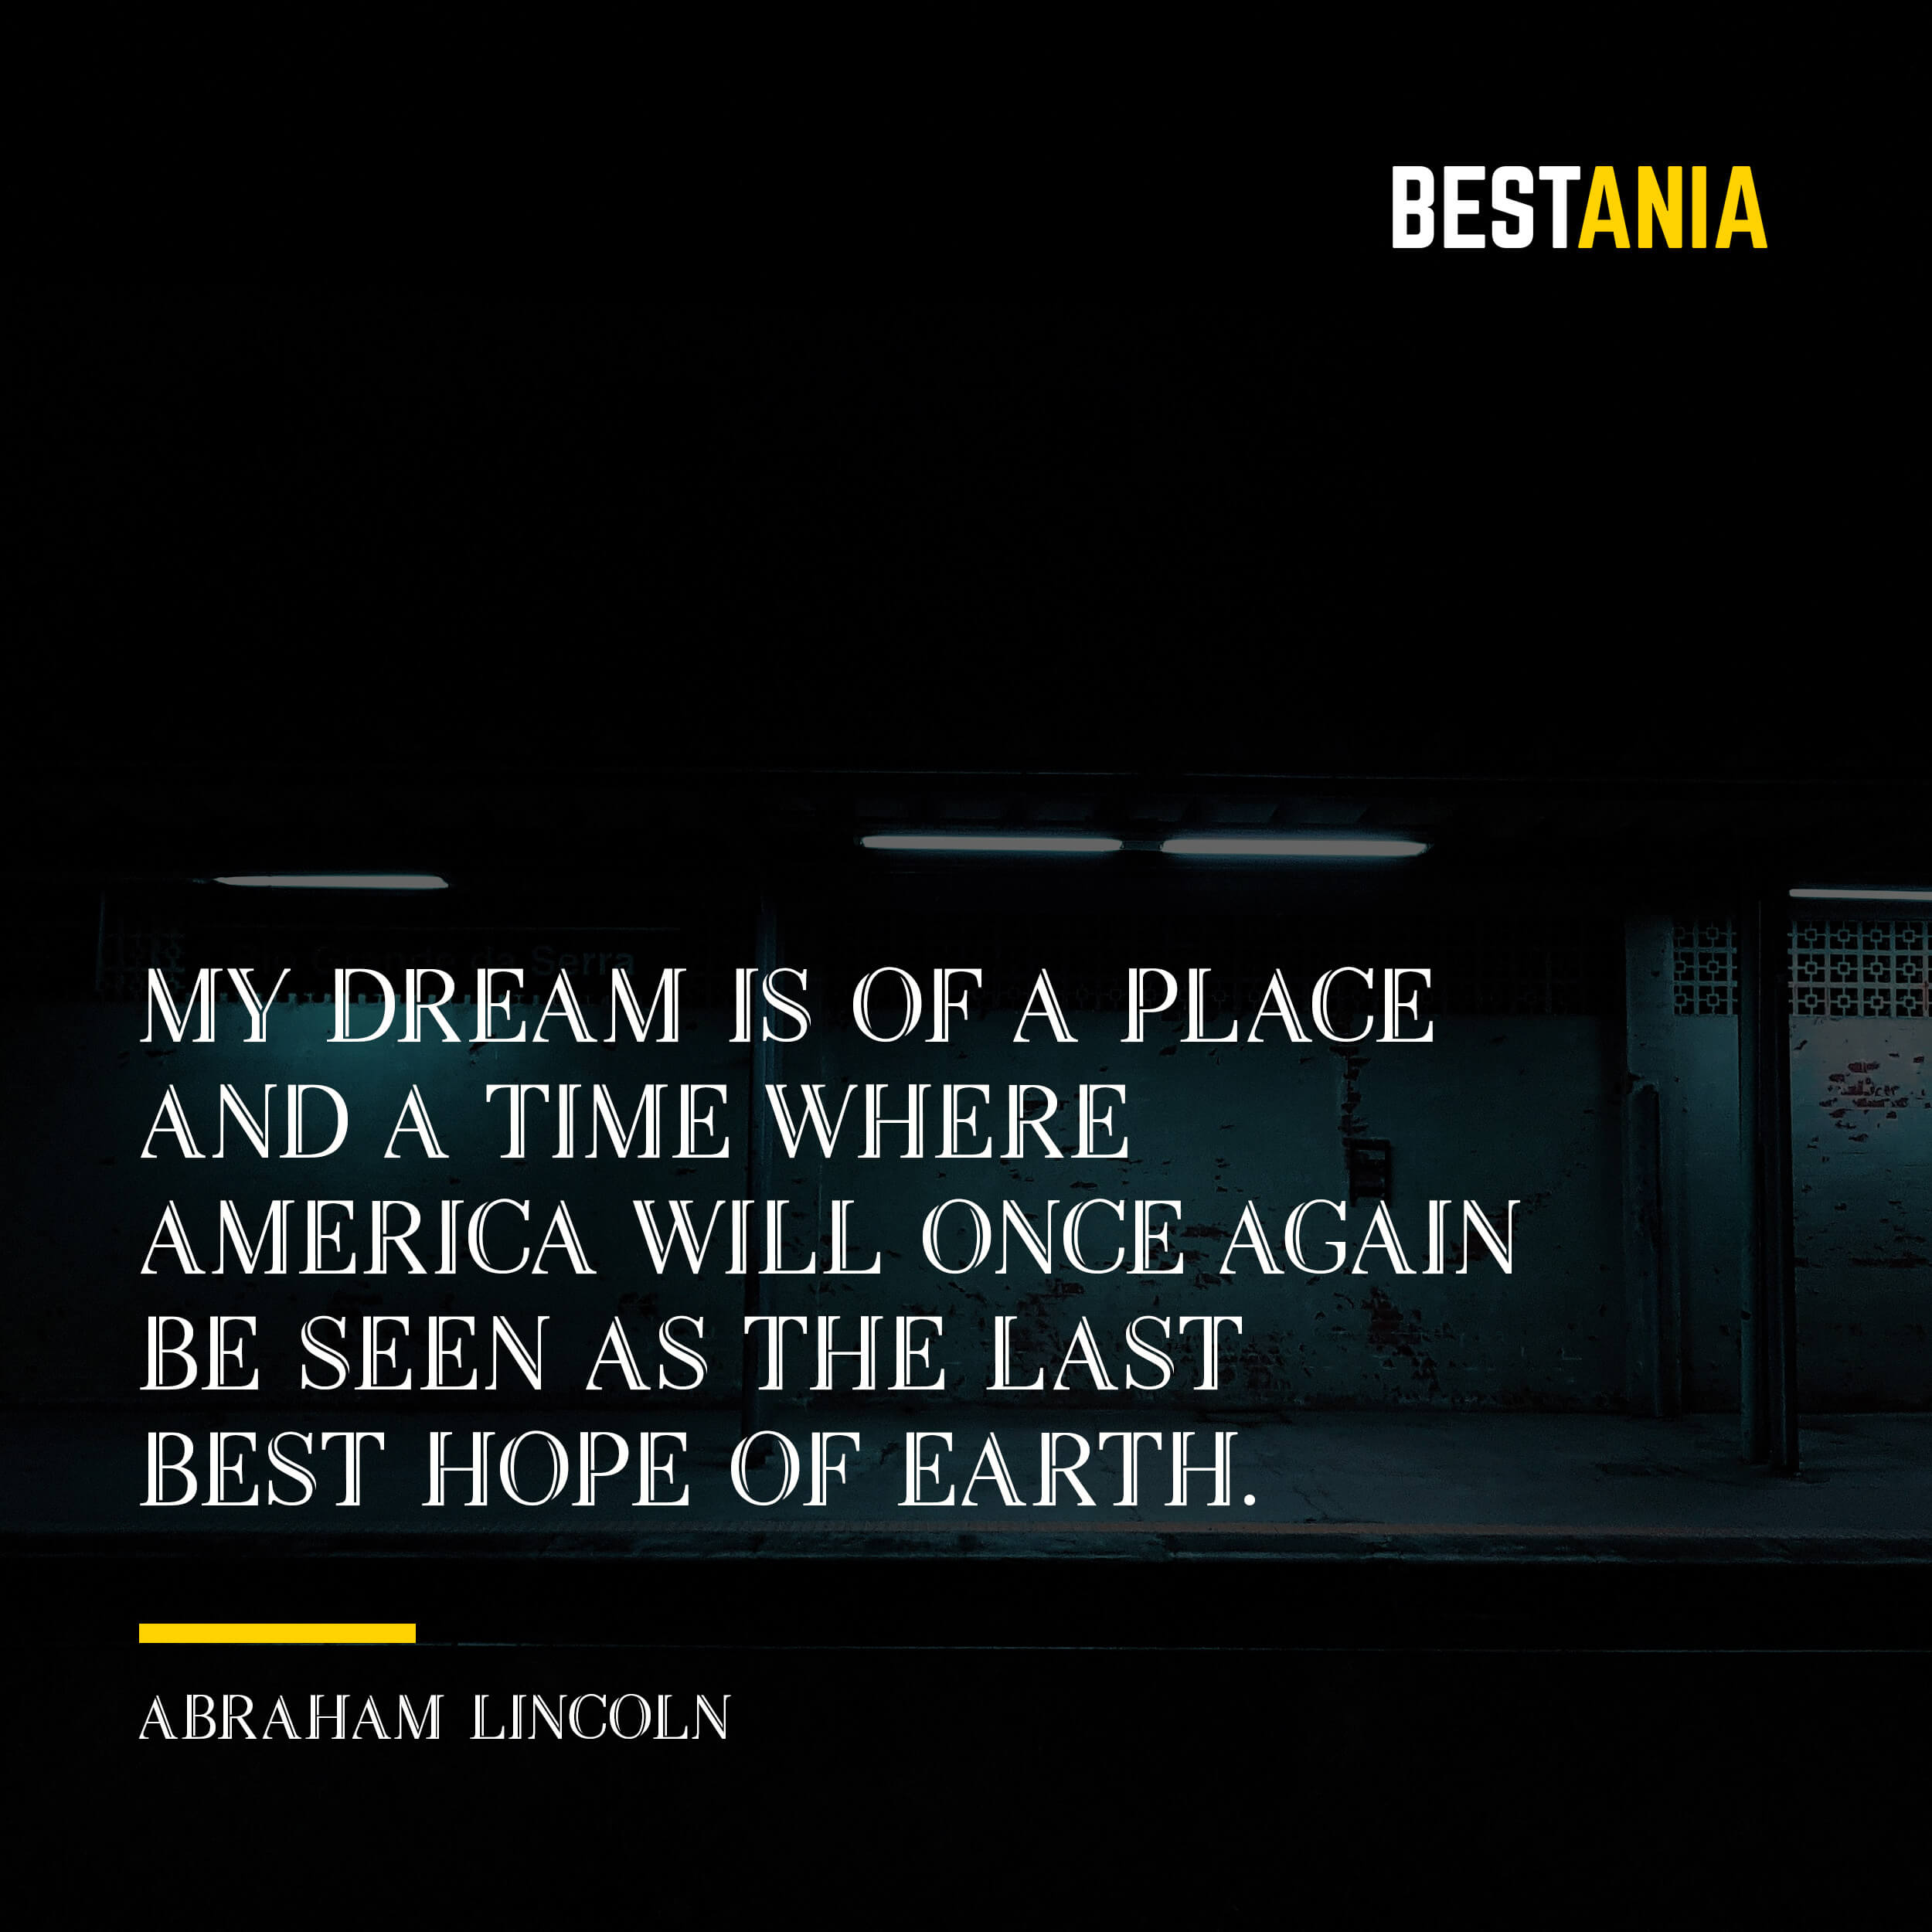 """MY DREAM IS OF A PLACE AND A TIME WHERE AMERICA WILL ONCE AGAIN BE SEEN AS THE LAST BEST HOPE OF EARTH."" ABRAHAM LINCOLN"